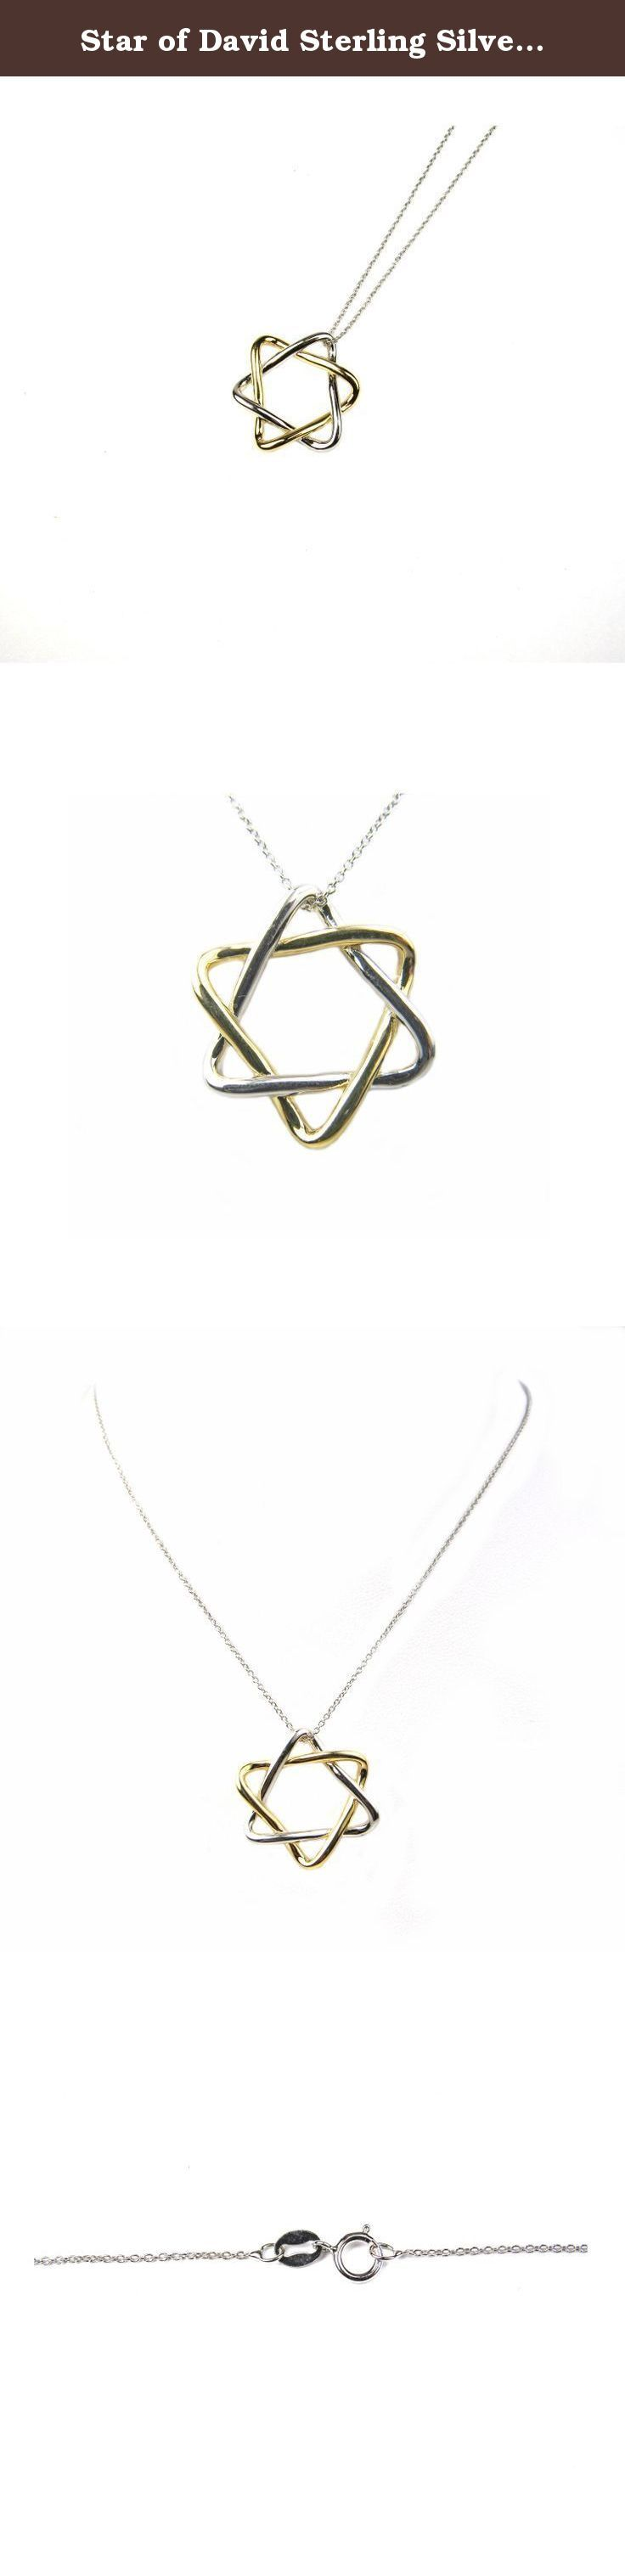 "Star of David Sterling Silver Pendant with Gold Plating. Two Tone. 18"" Chain Included. Plated in Yellow Gold and White Rhoidum, two tone pendant / necklace. Highly polished for a very fine finish. Includes 18"" chain. A very unique Magen David that can be worn by wither men or women."